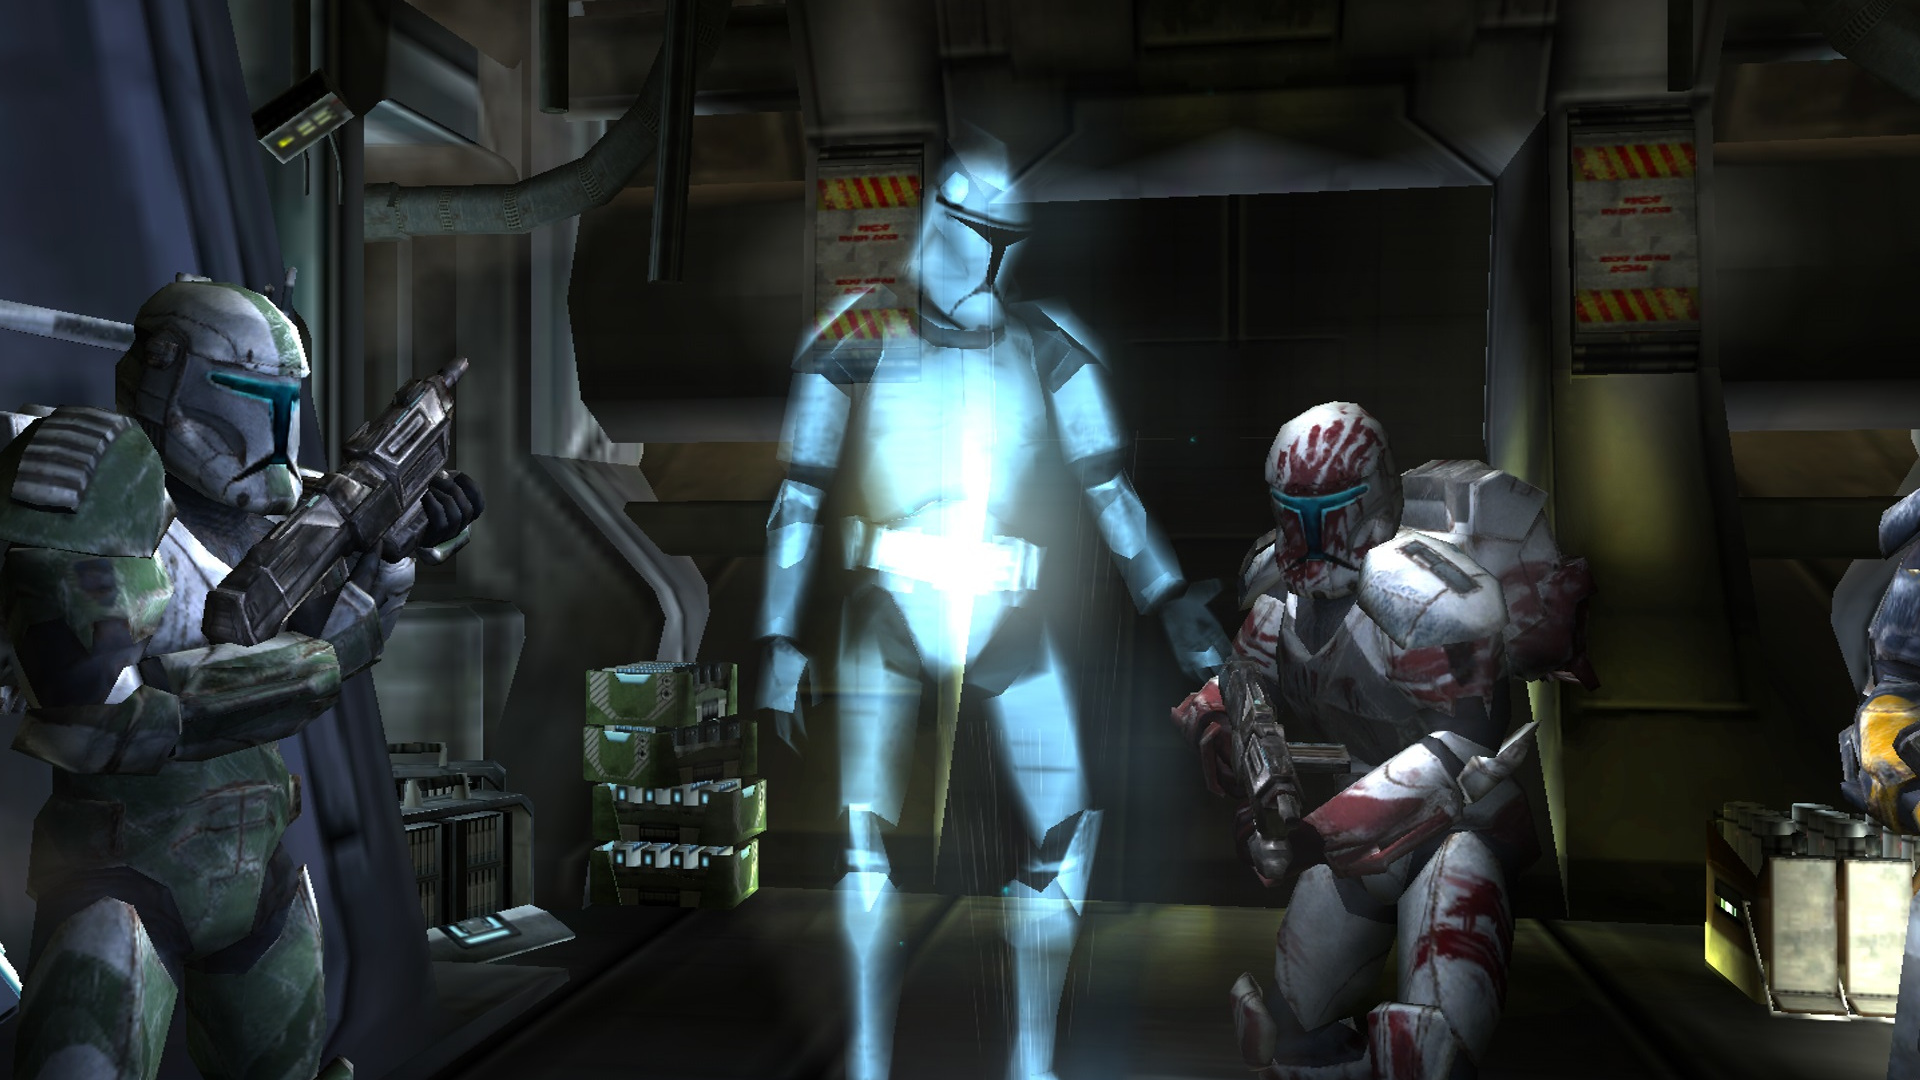 Star Wars: Republic Commando (The Late Review) – The Late Night Session